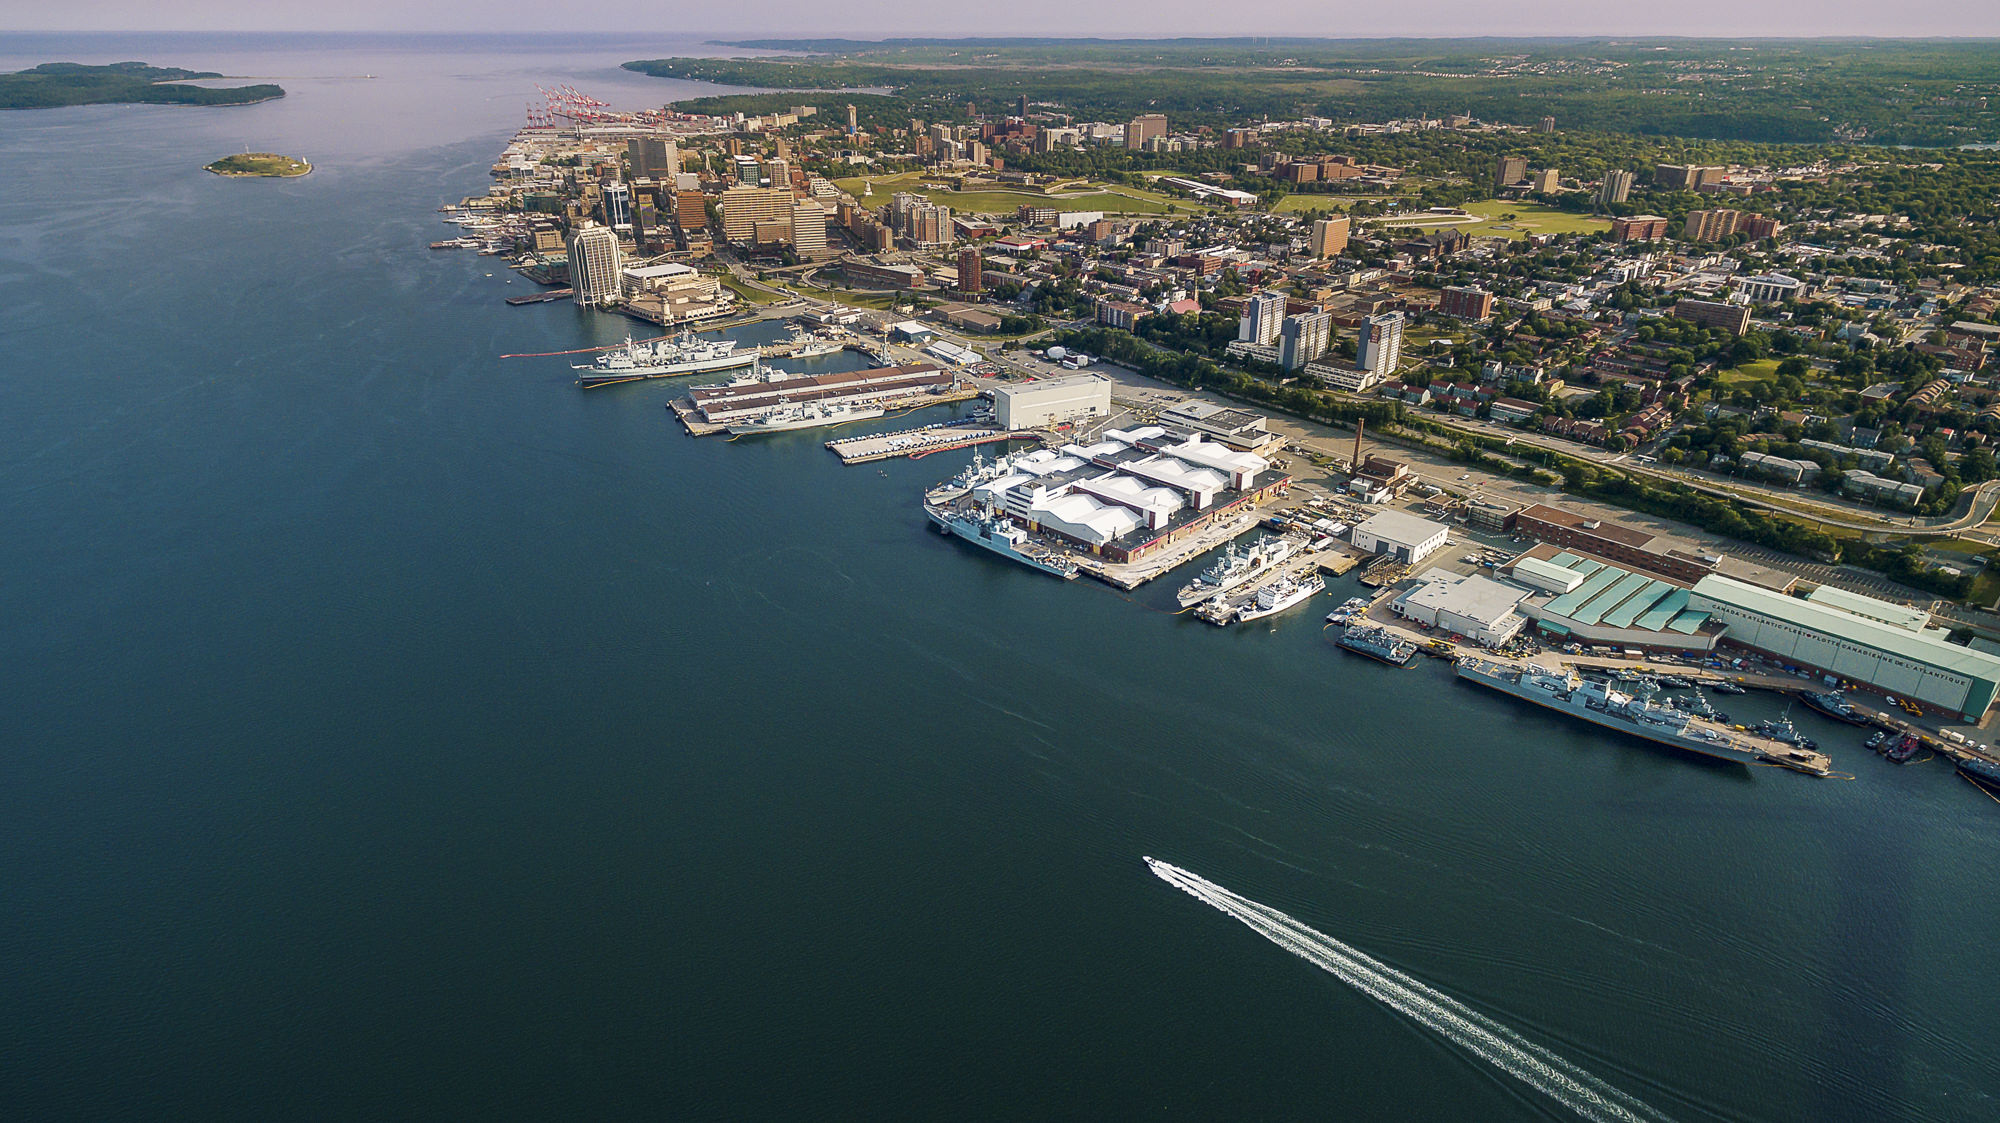 Halifax downtown from drone.jpg